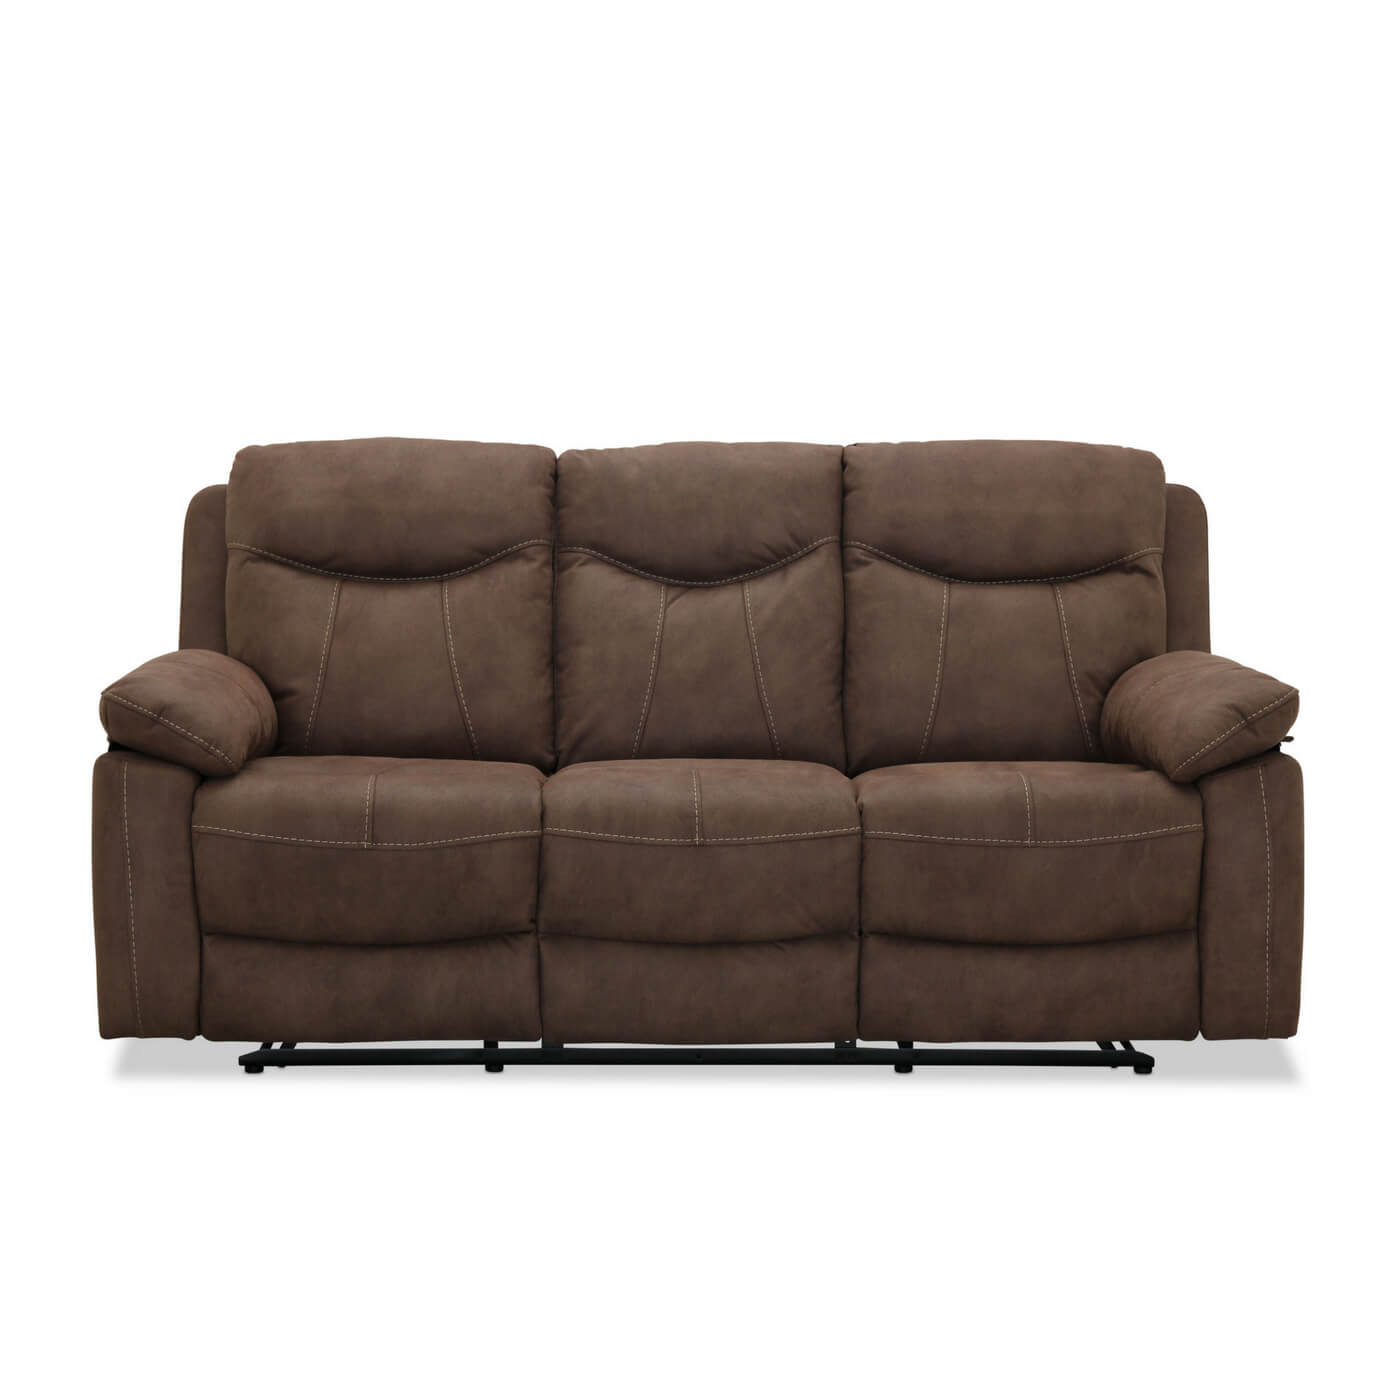 Image of   Boston recliner 3 personers Biograf sofa, Brun stof